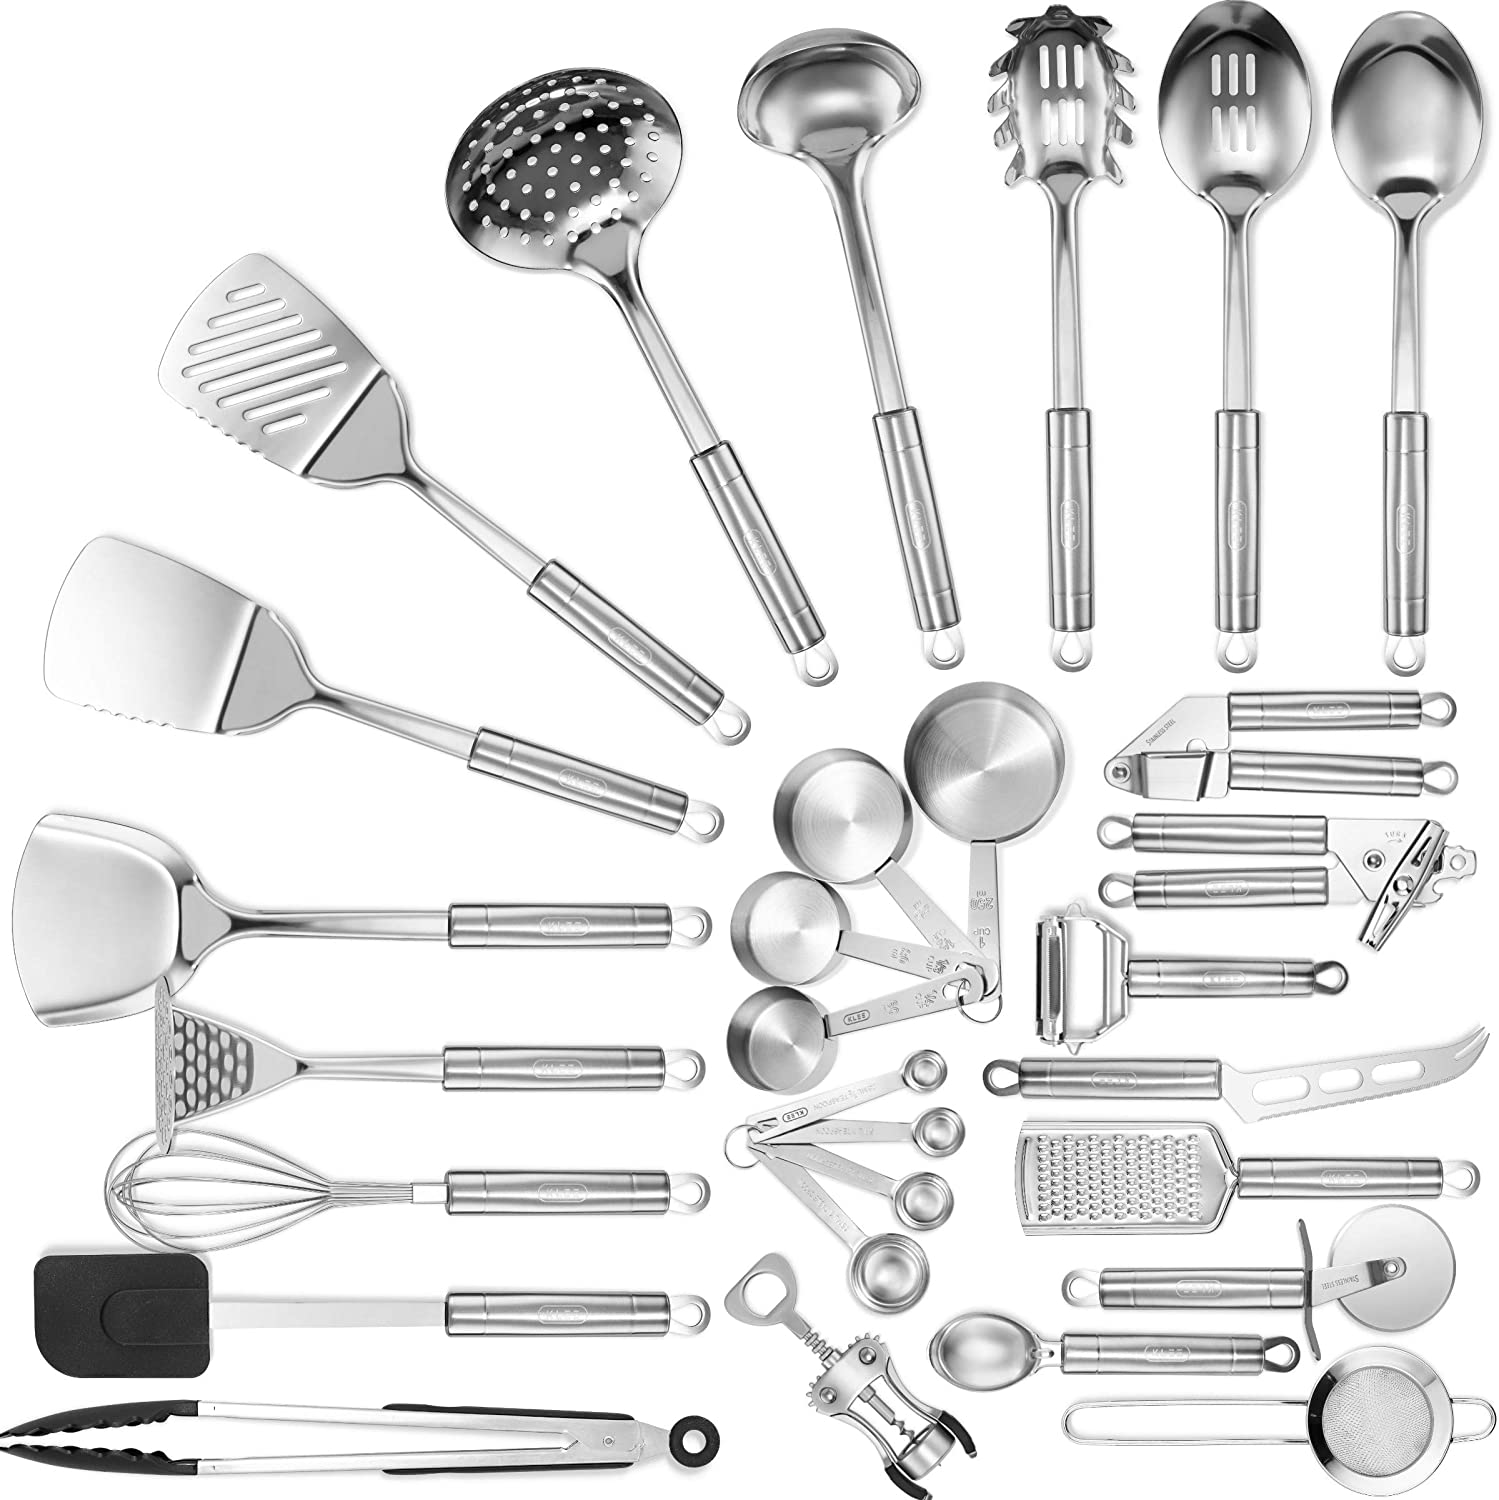 Klee Stainless Steel Kitchen Utensil Set 29 Cooking Utensils Set Spatula Garlic Press Cheese Knife Whisk Tongs Pizza Cutter Grater Strainer Can Opener And More Nonstick Cookware Set Amazon Ca Home Kitchen